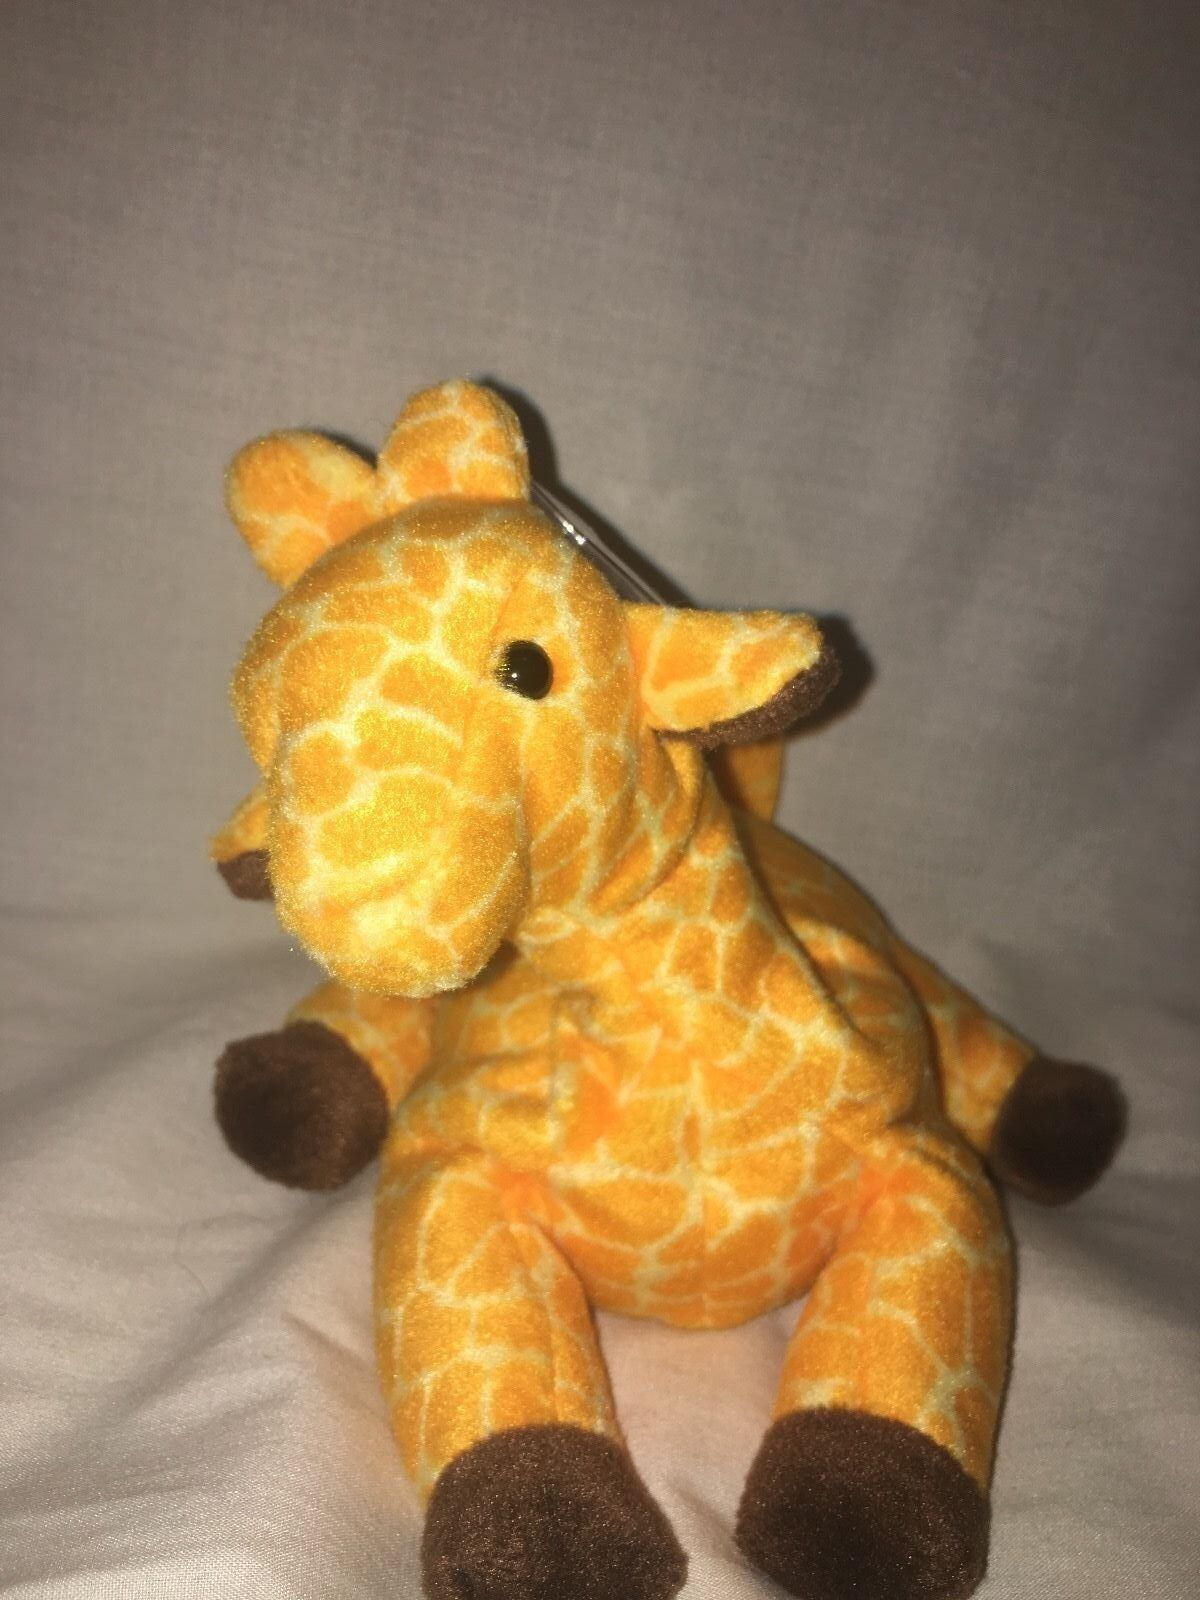 1995 Twigs Twigs Twigs the Giraffe Ty Beanie Baby in Mint Condition  3b5cb7